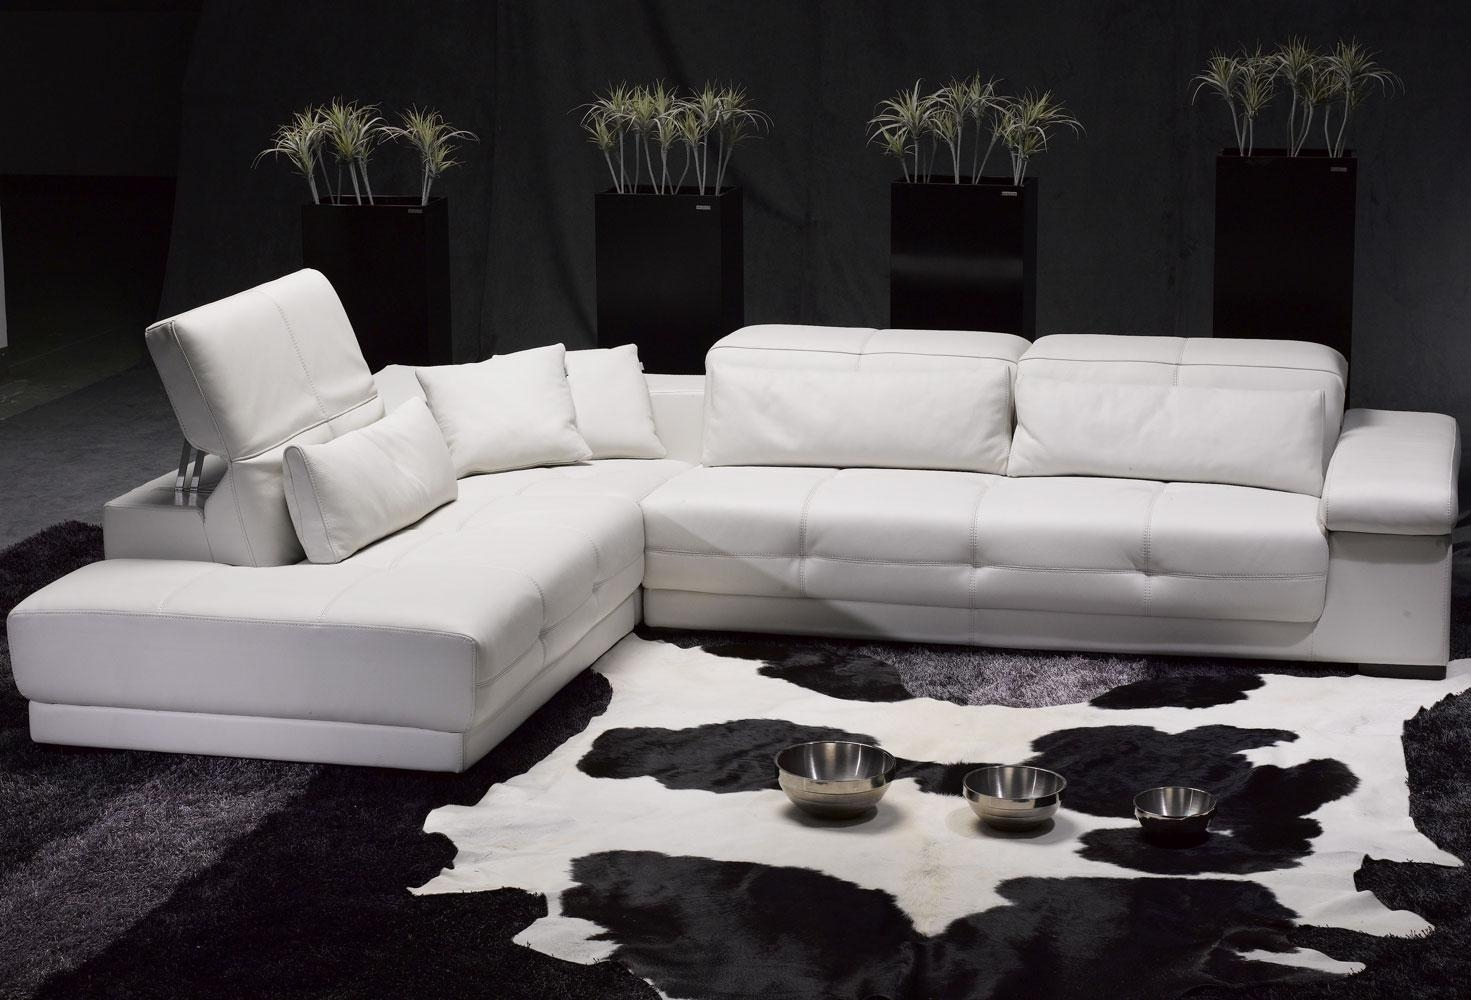 White Leather Sectional Sofa Ikea – S3Net – Sectional Sofas Sale With Regard To White Sectional Sofa For Sale (View 3 of 21)